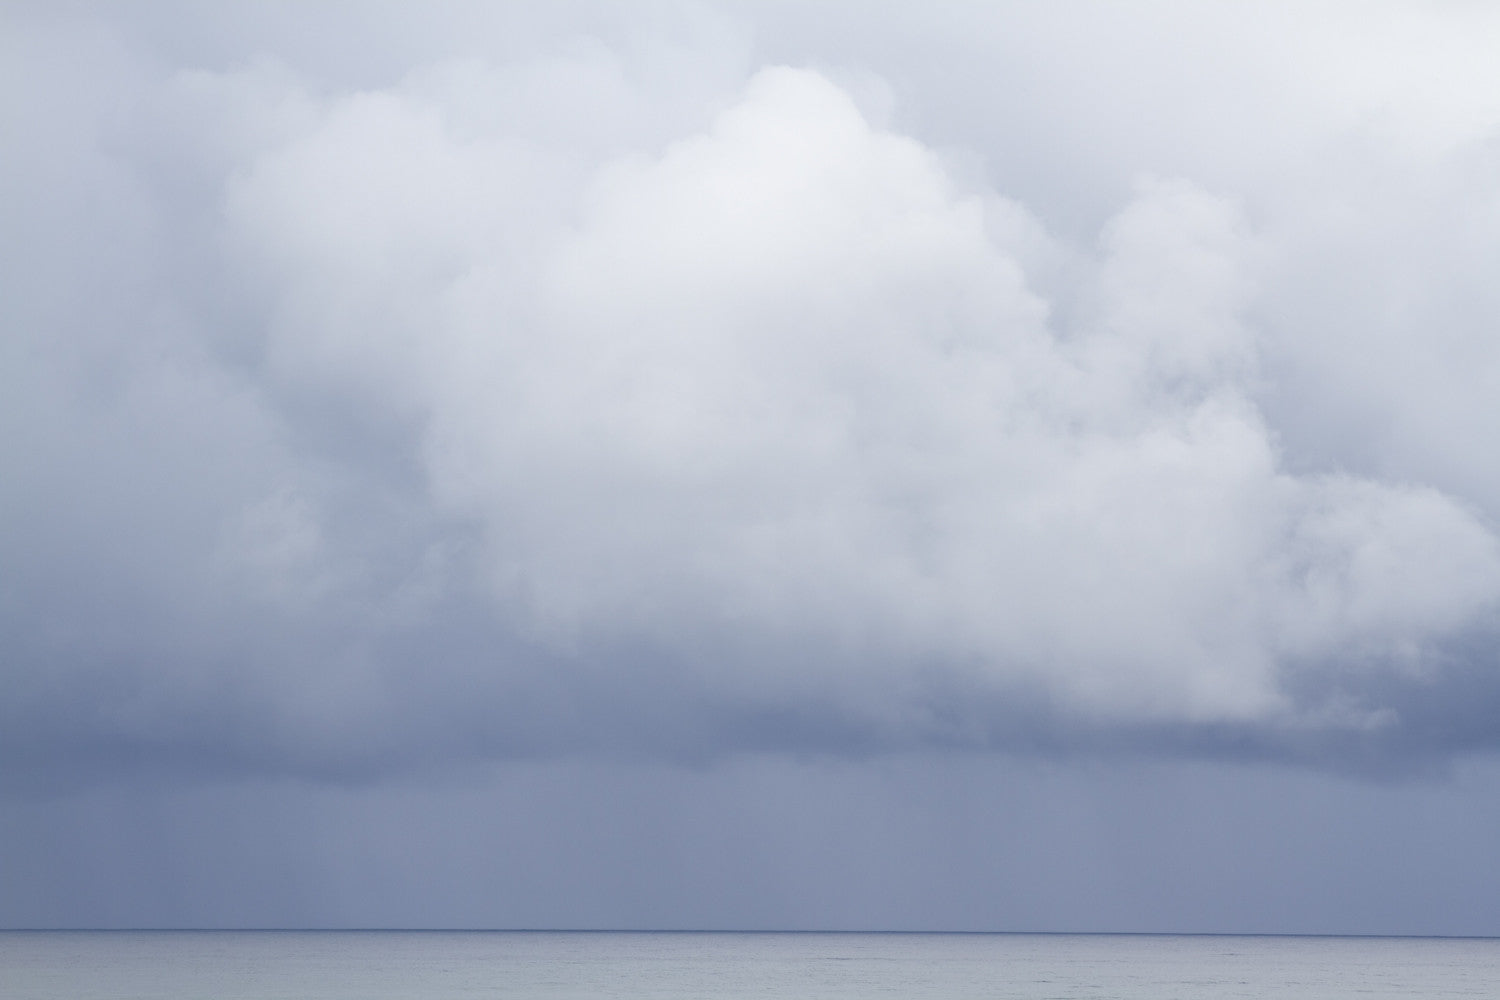 Summer Storm No. 3 Seascape Fine Art Photography Print by Cattie Coyle Photography